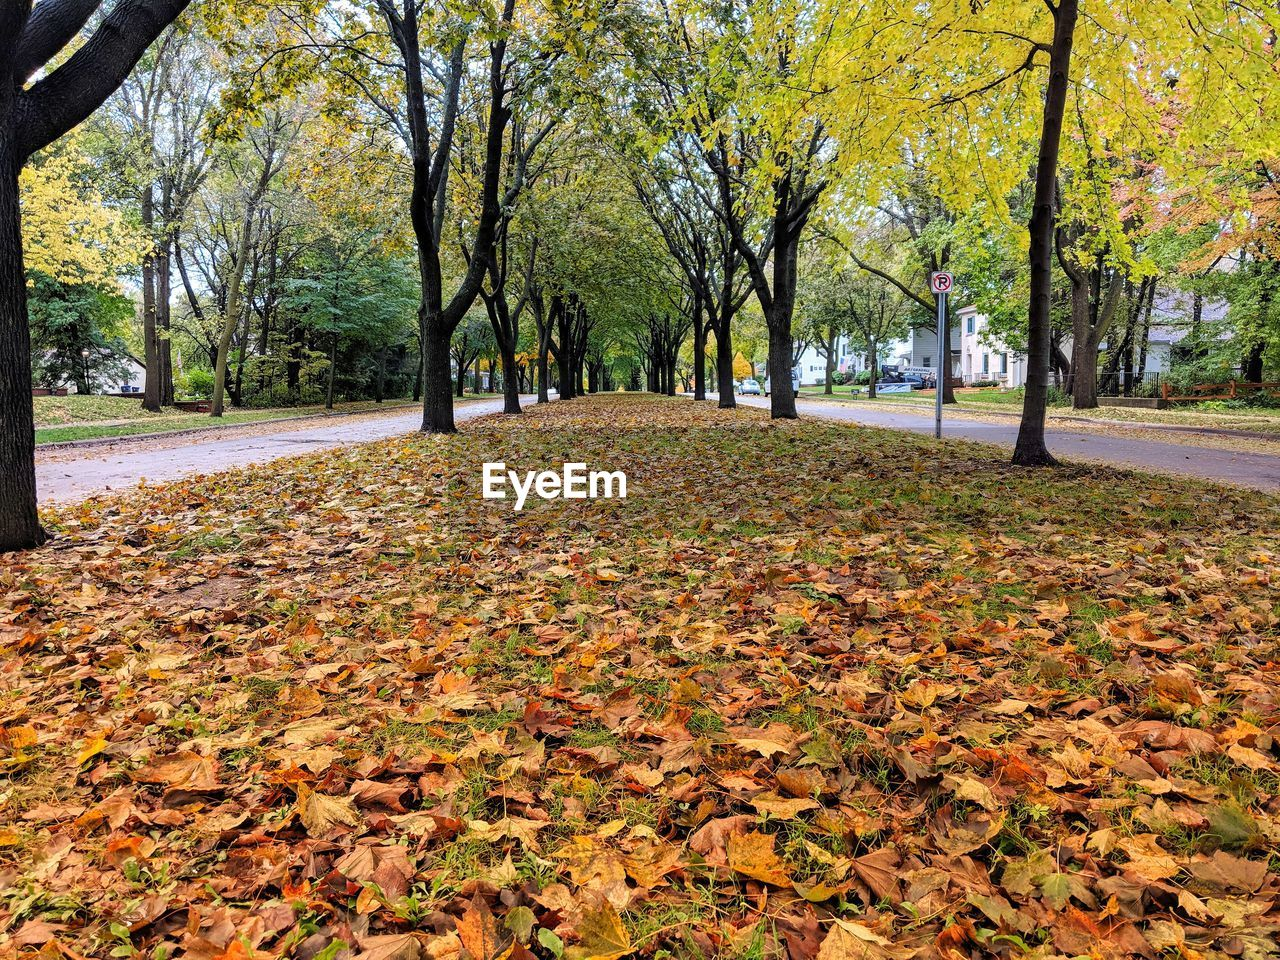 autumn, tree, plant part, leaf, change, plant, park, beauty in nature, falling, nature, tranquility, park - man made space, day, growth, tranquil scene, tree trunk, leaves, trunk, scenics - nature, no people, outdoors, fall, autumn collection, natural condition, treelined